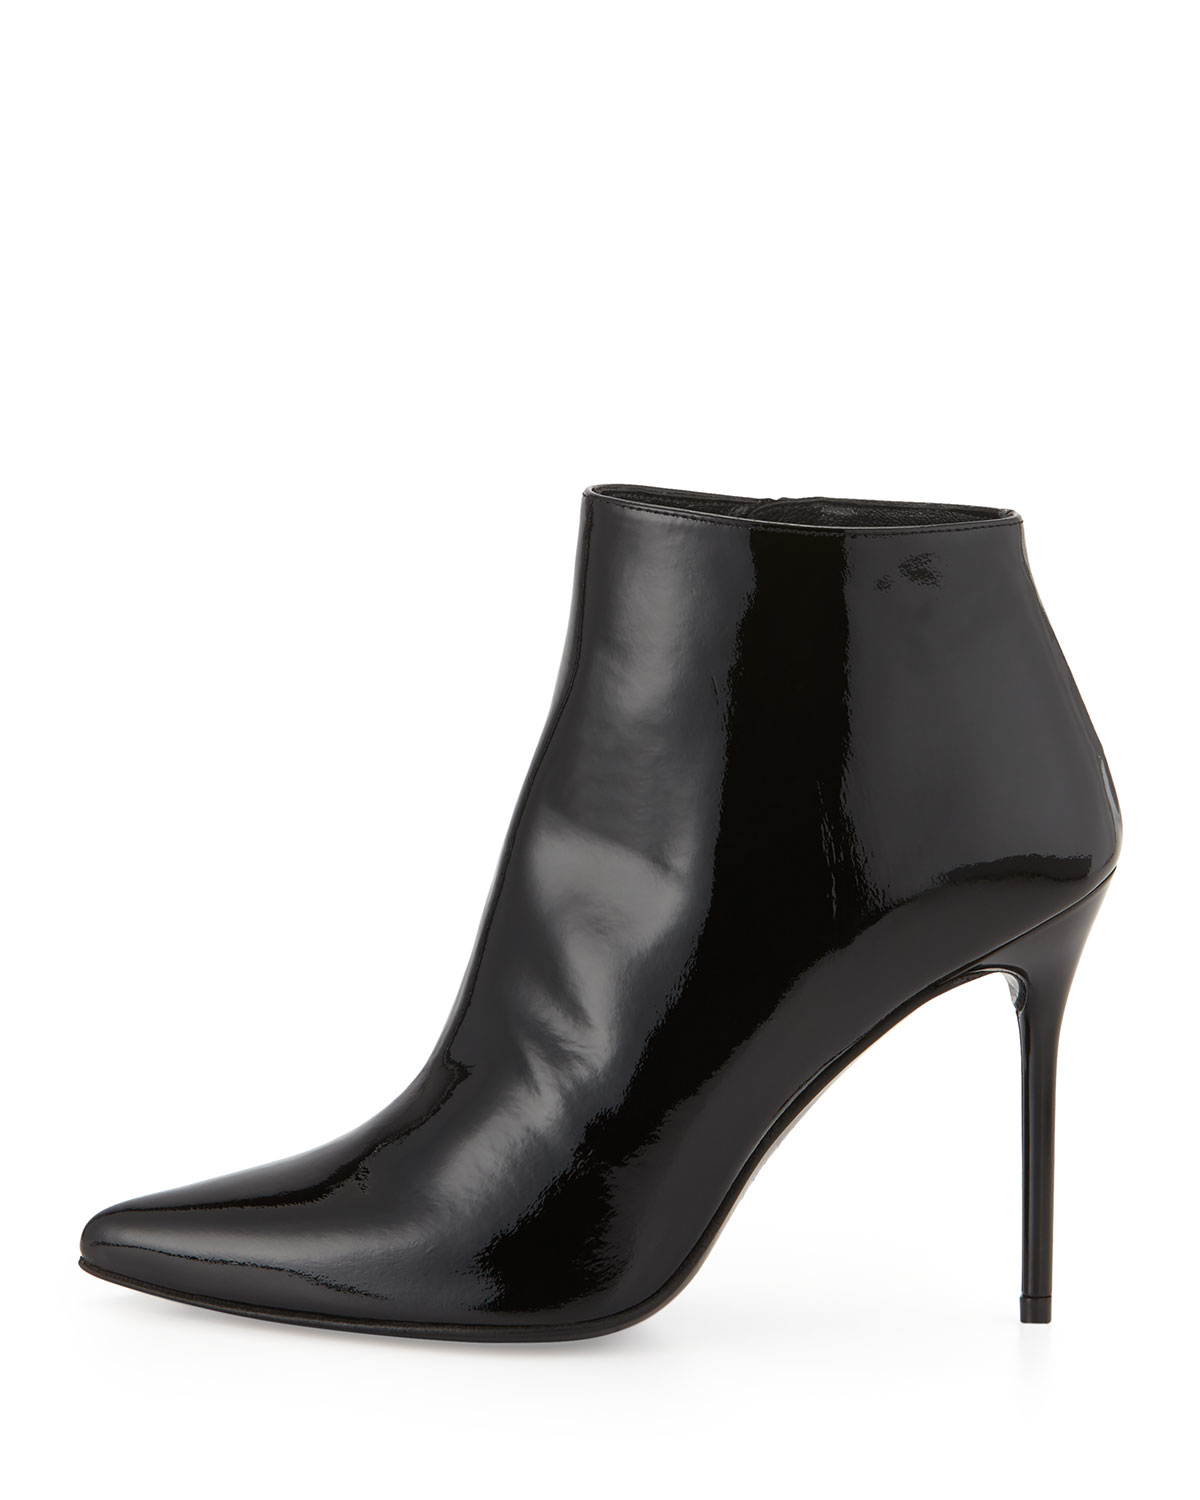 Stuart Weitzman Vienna Patent Leather Ankle Boot (Women's) EvSGD